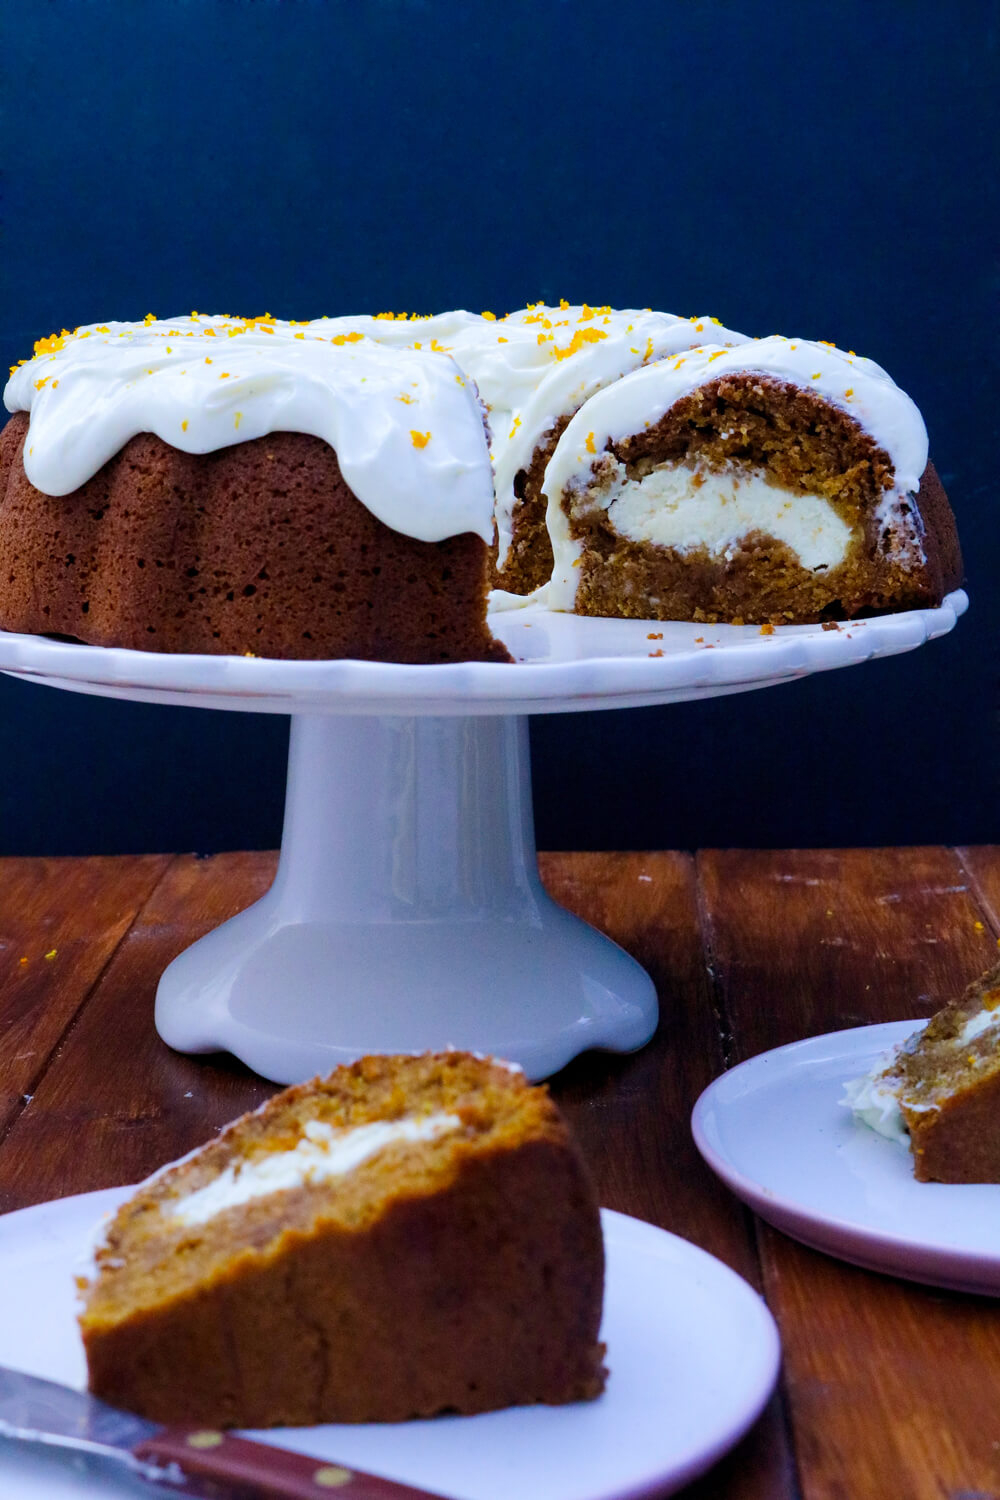 Carrot Bundt Cake with a Cheesecake Filling | Take Some Whisks